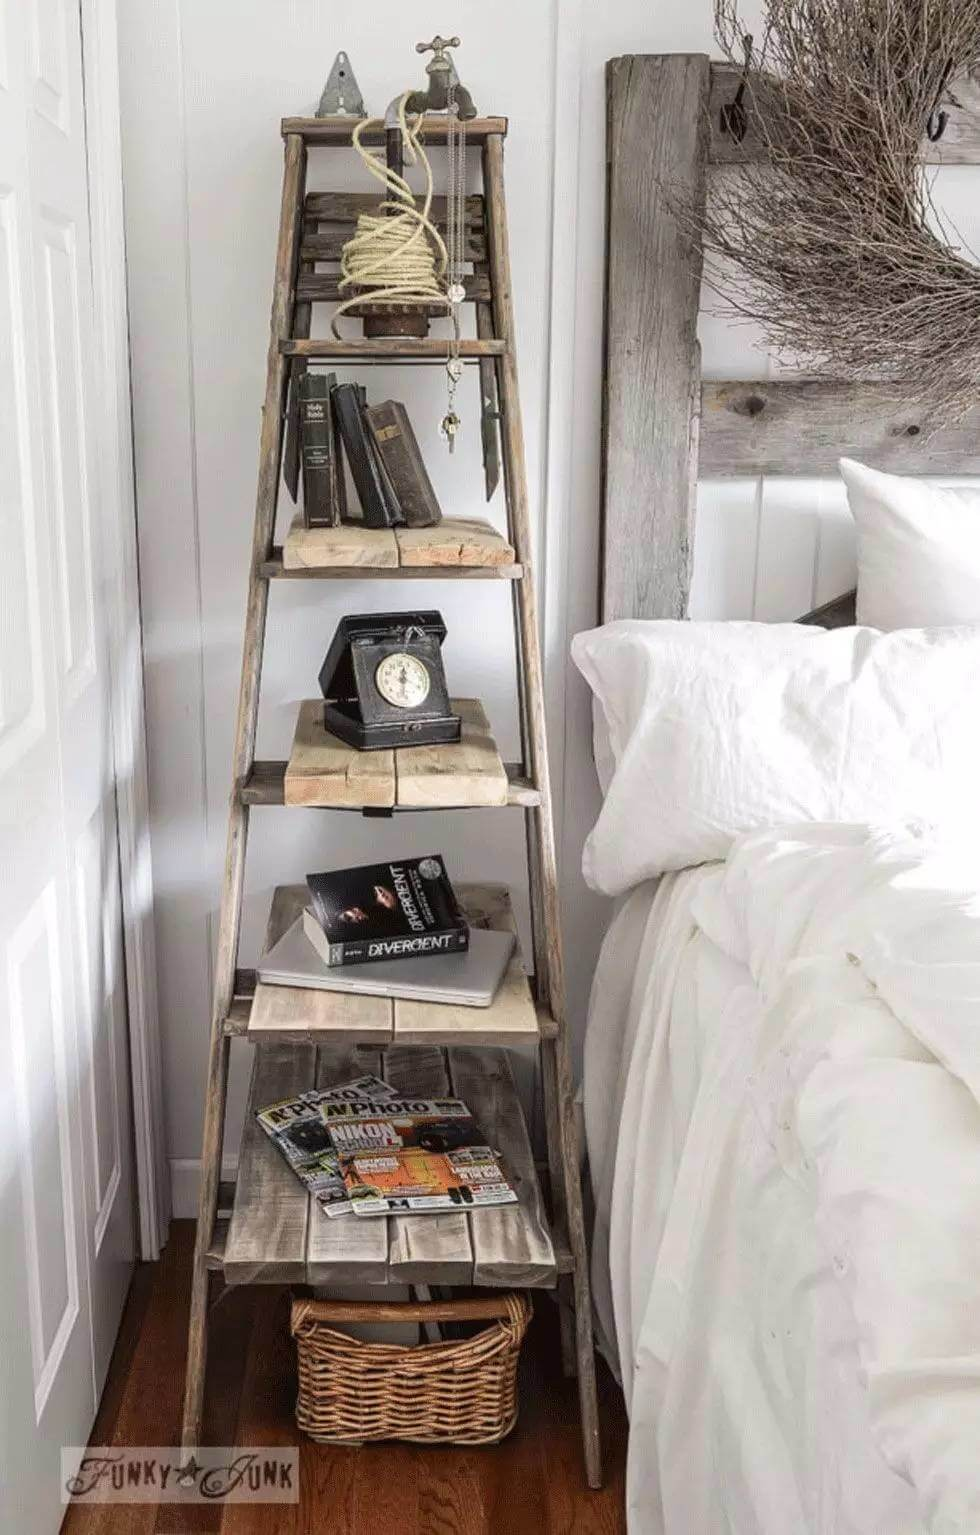 17 Upcycled Orchard Ladder Turned Nightstand